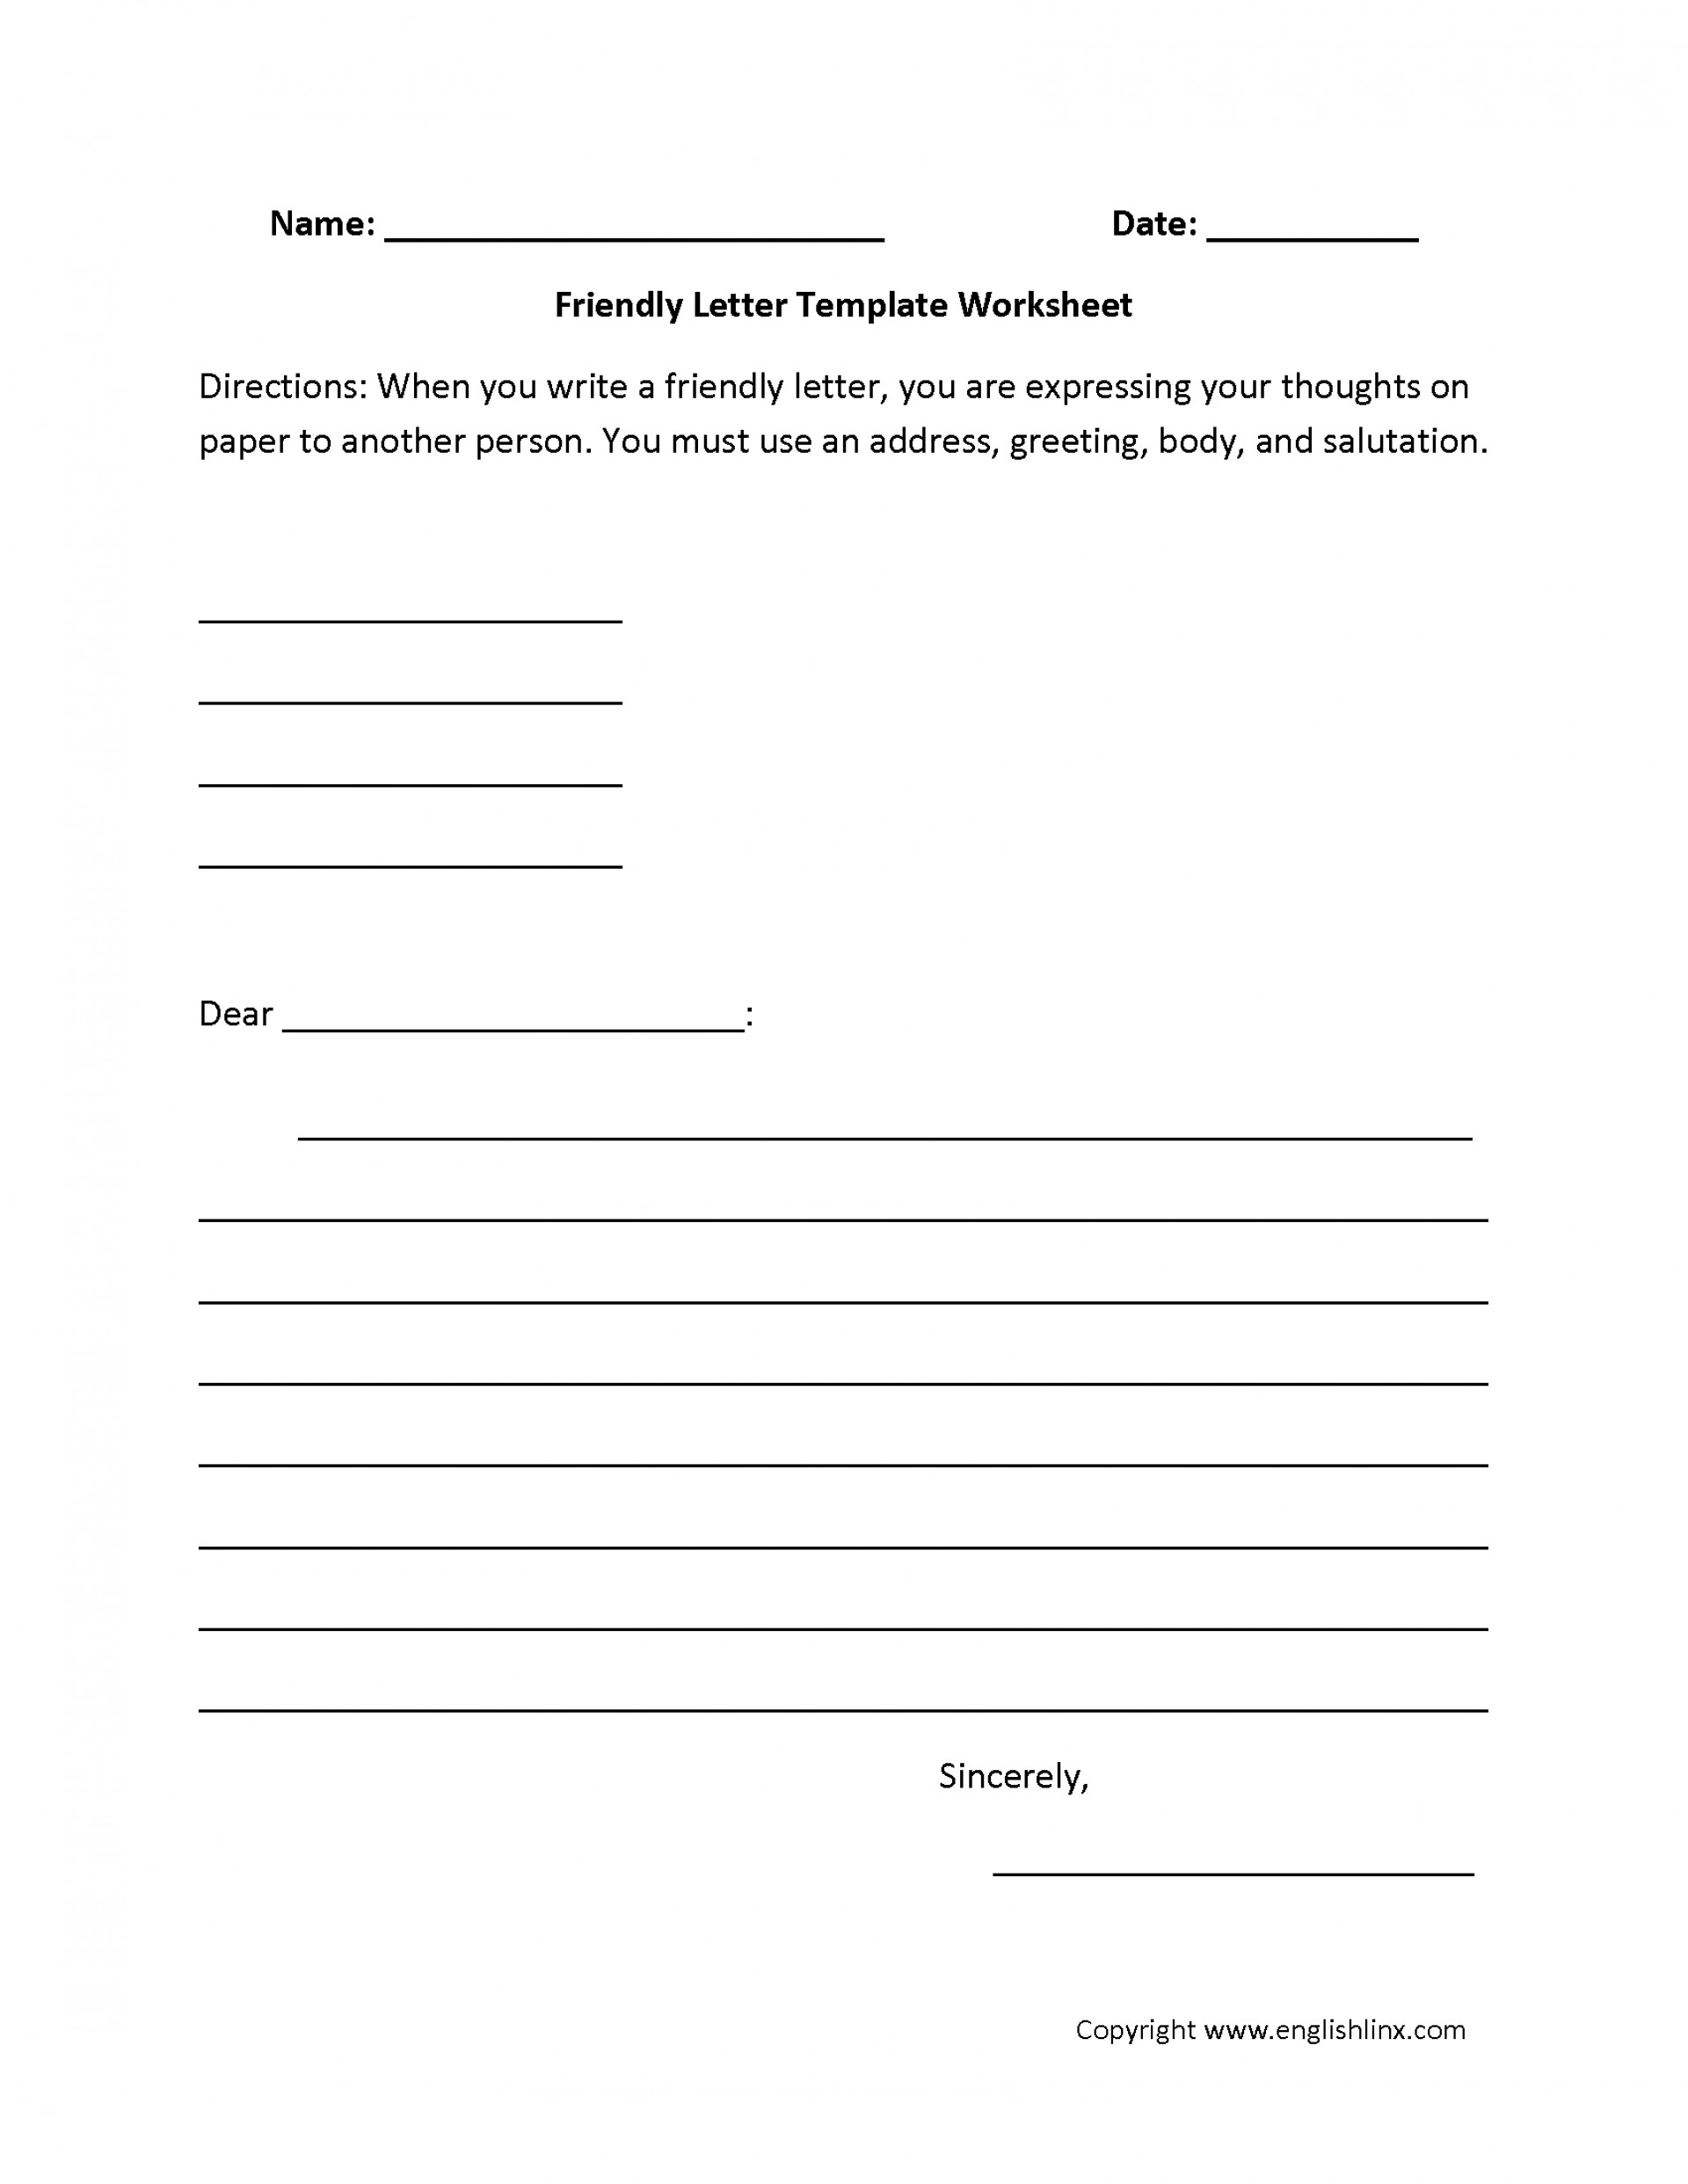 011 Essay Example About Friendly Stupendous On Eco Diwali In Hindi Environmentally Letter 1920